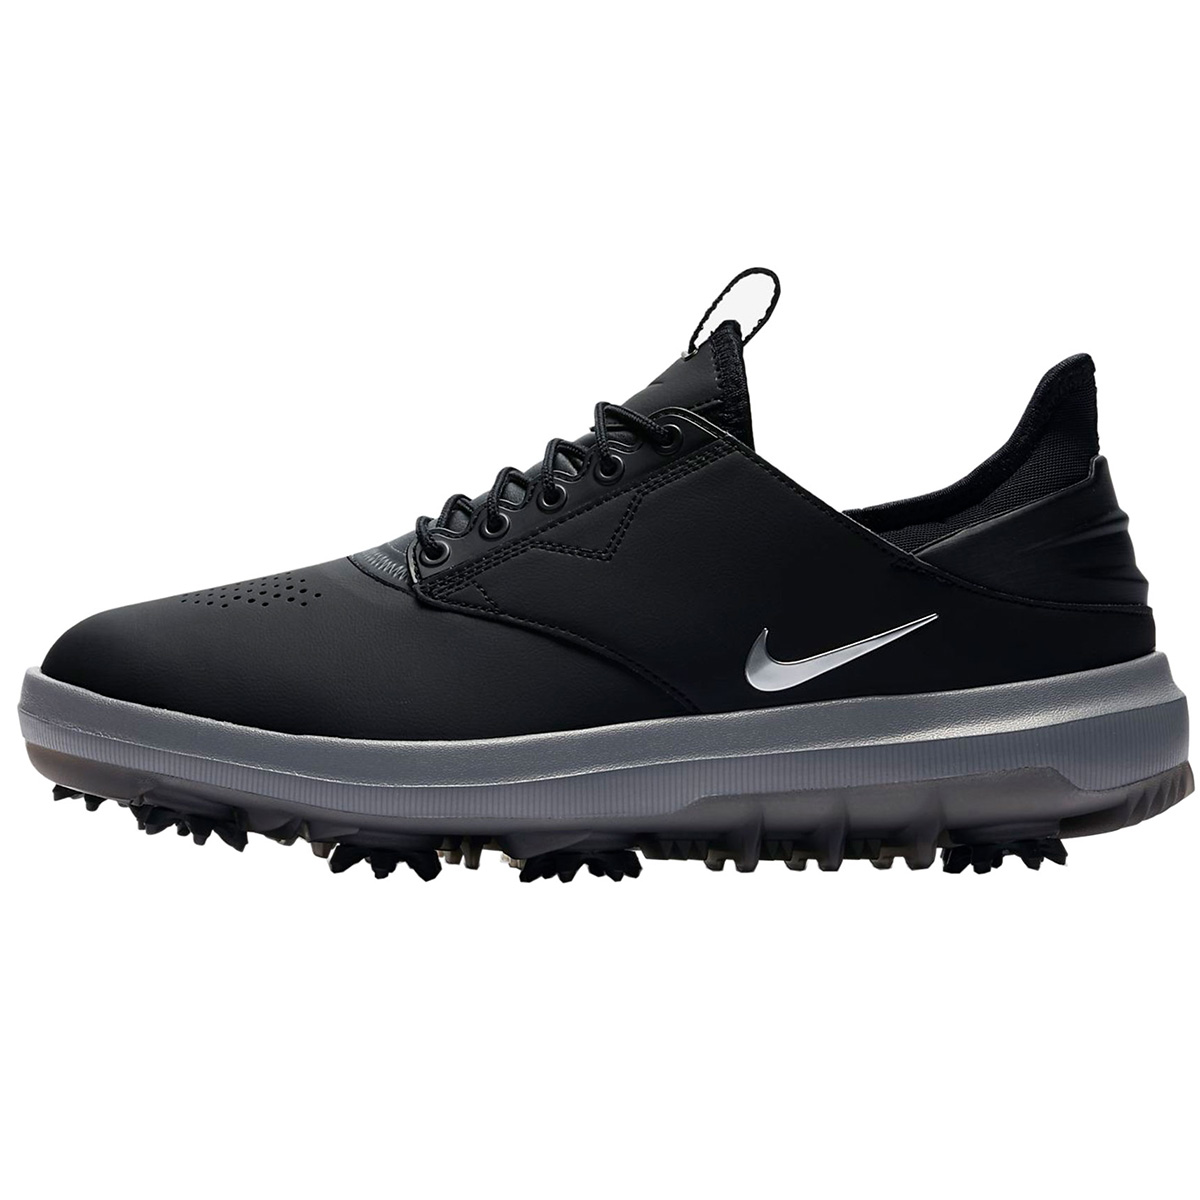 1adc969fbc2a Nike Golf Air Zoom Direct Shoes from american golf